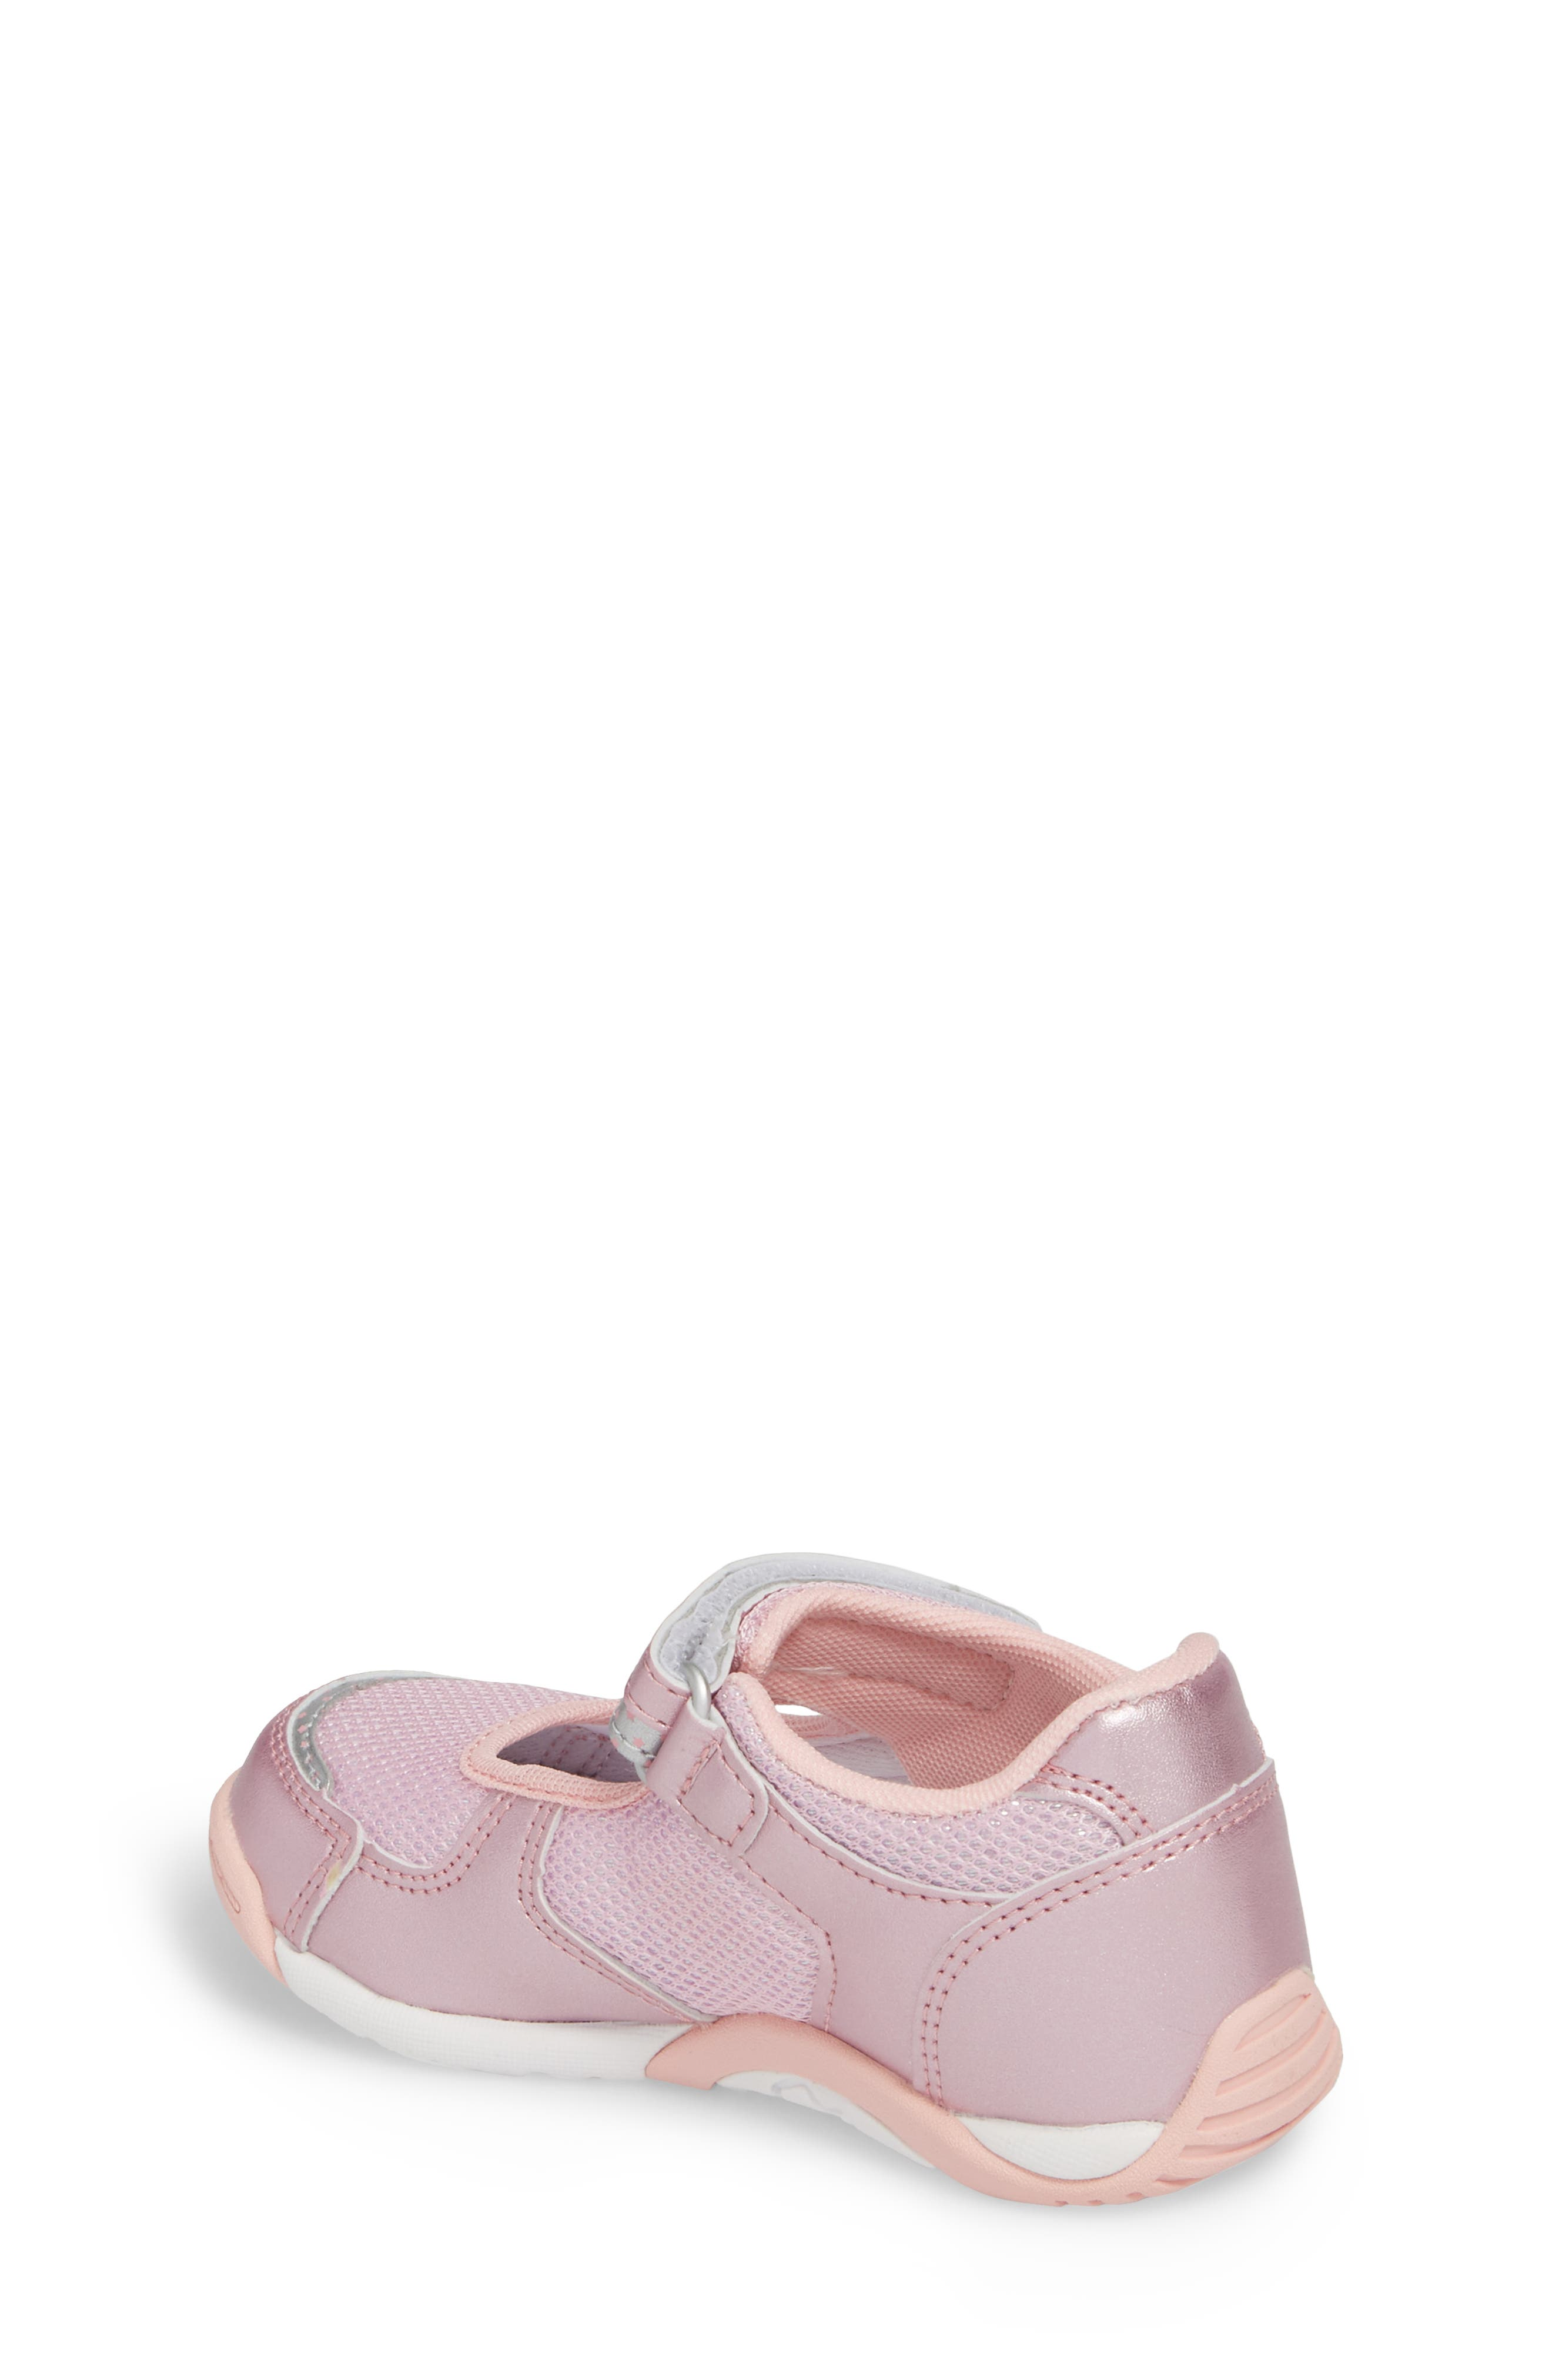 Twinkle Washable Sneaker,                             Alternate thumbnail 2, color,                             Rose/ Pink